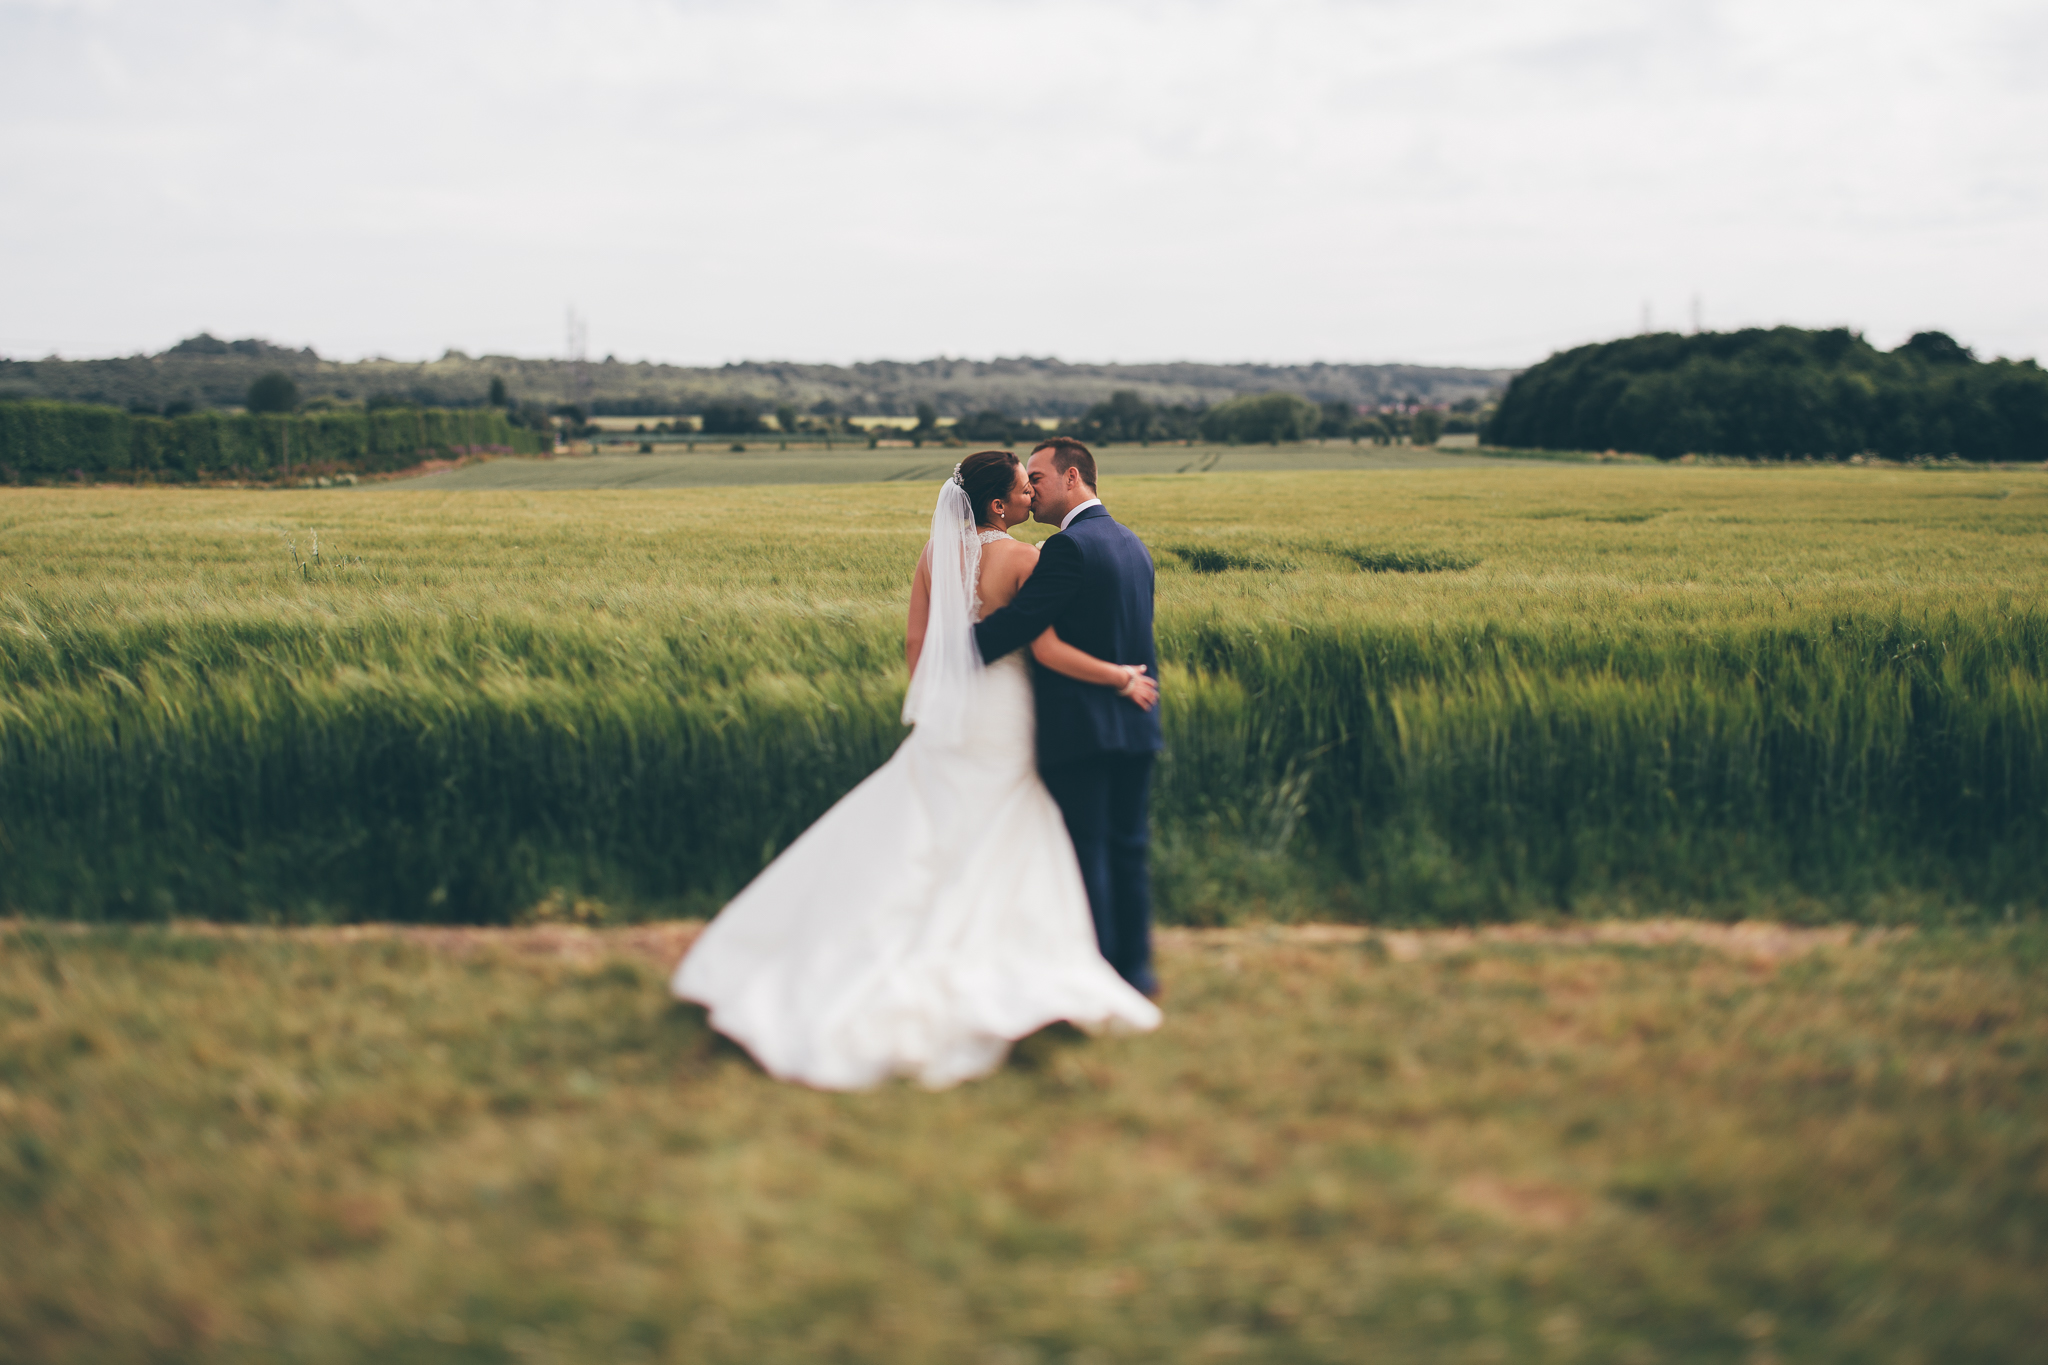 Joanna Nicole Photography Creative artistic wedding photography kent cooling castle barns vintage documentary (60 of 106).jpg